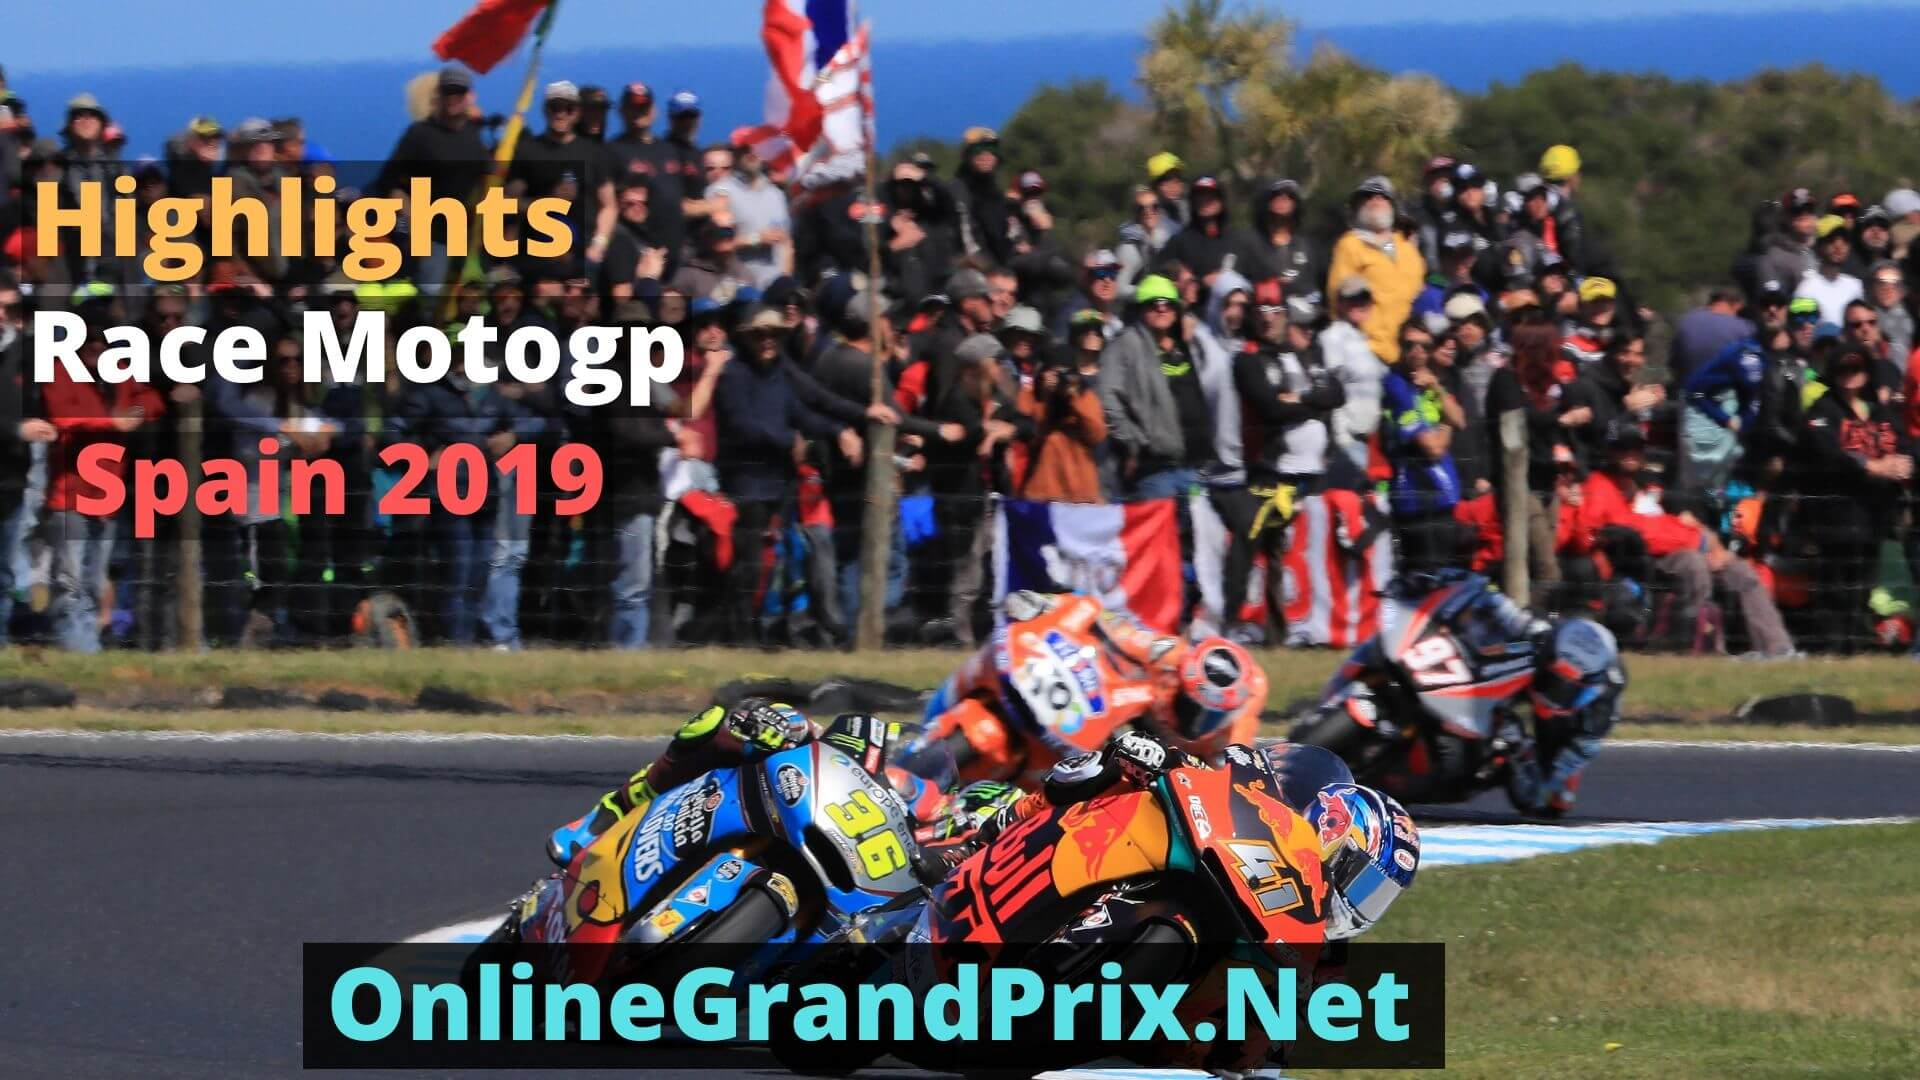 Spain MotoGP Highlights 2019